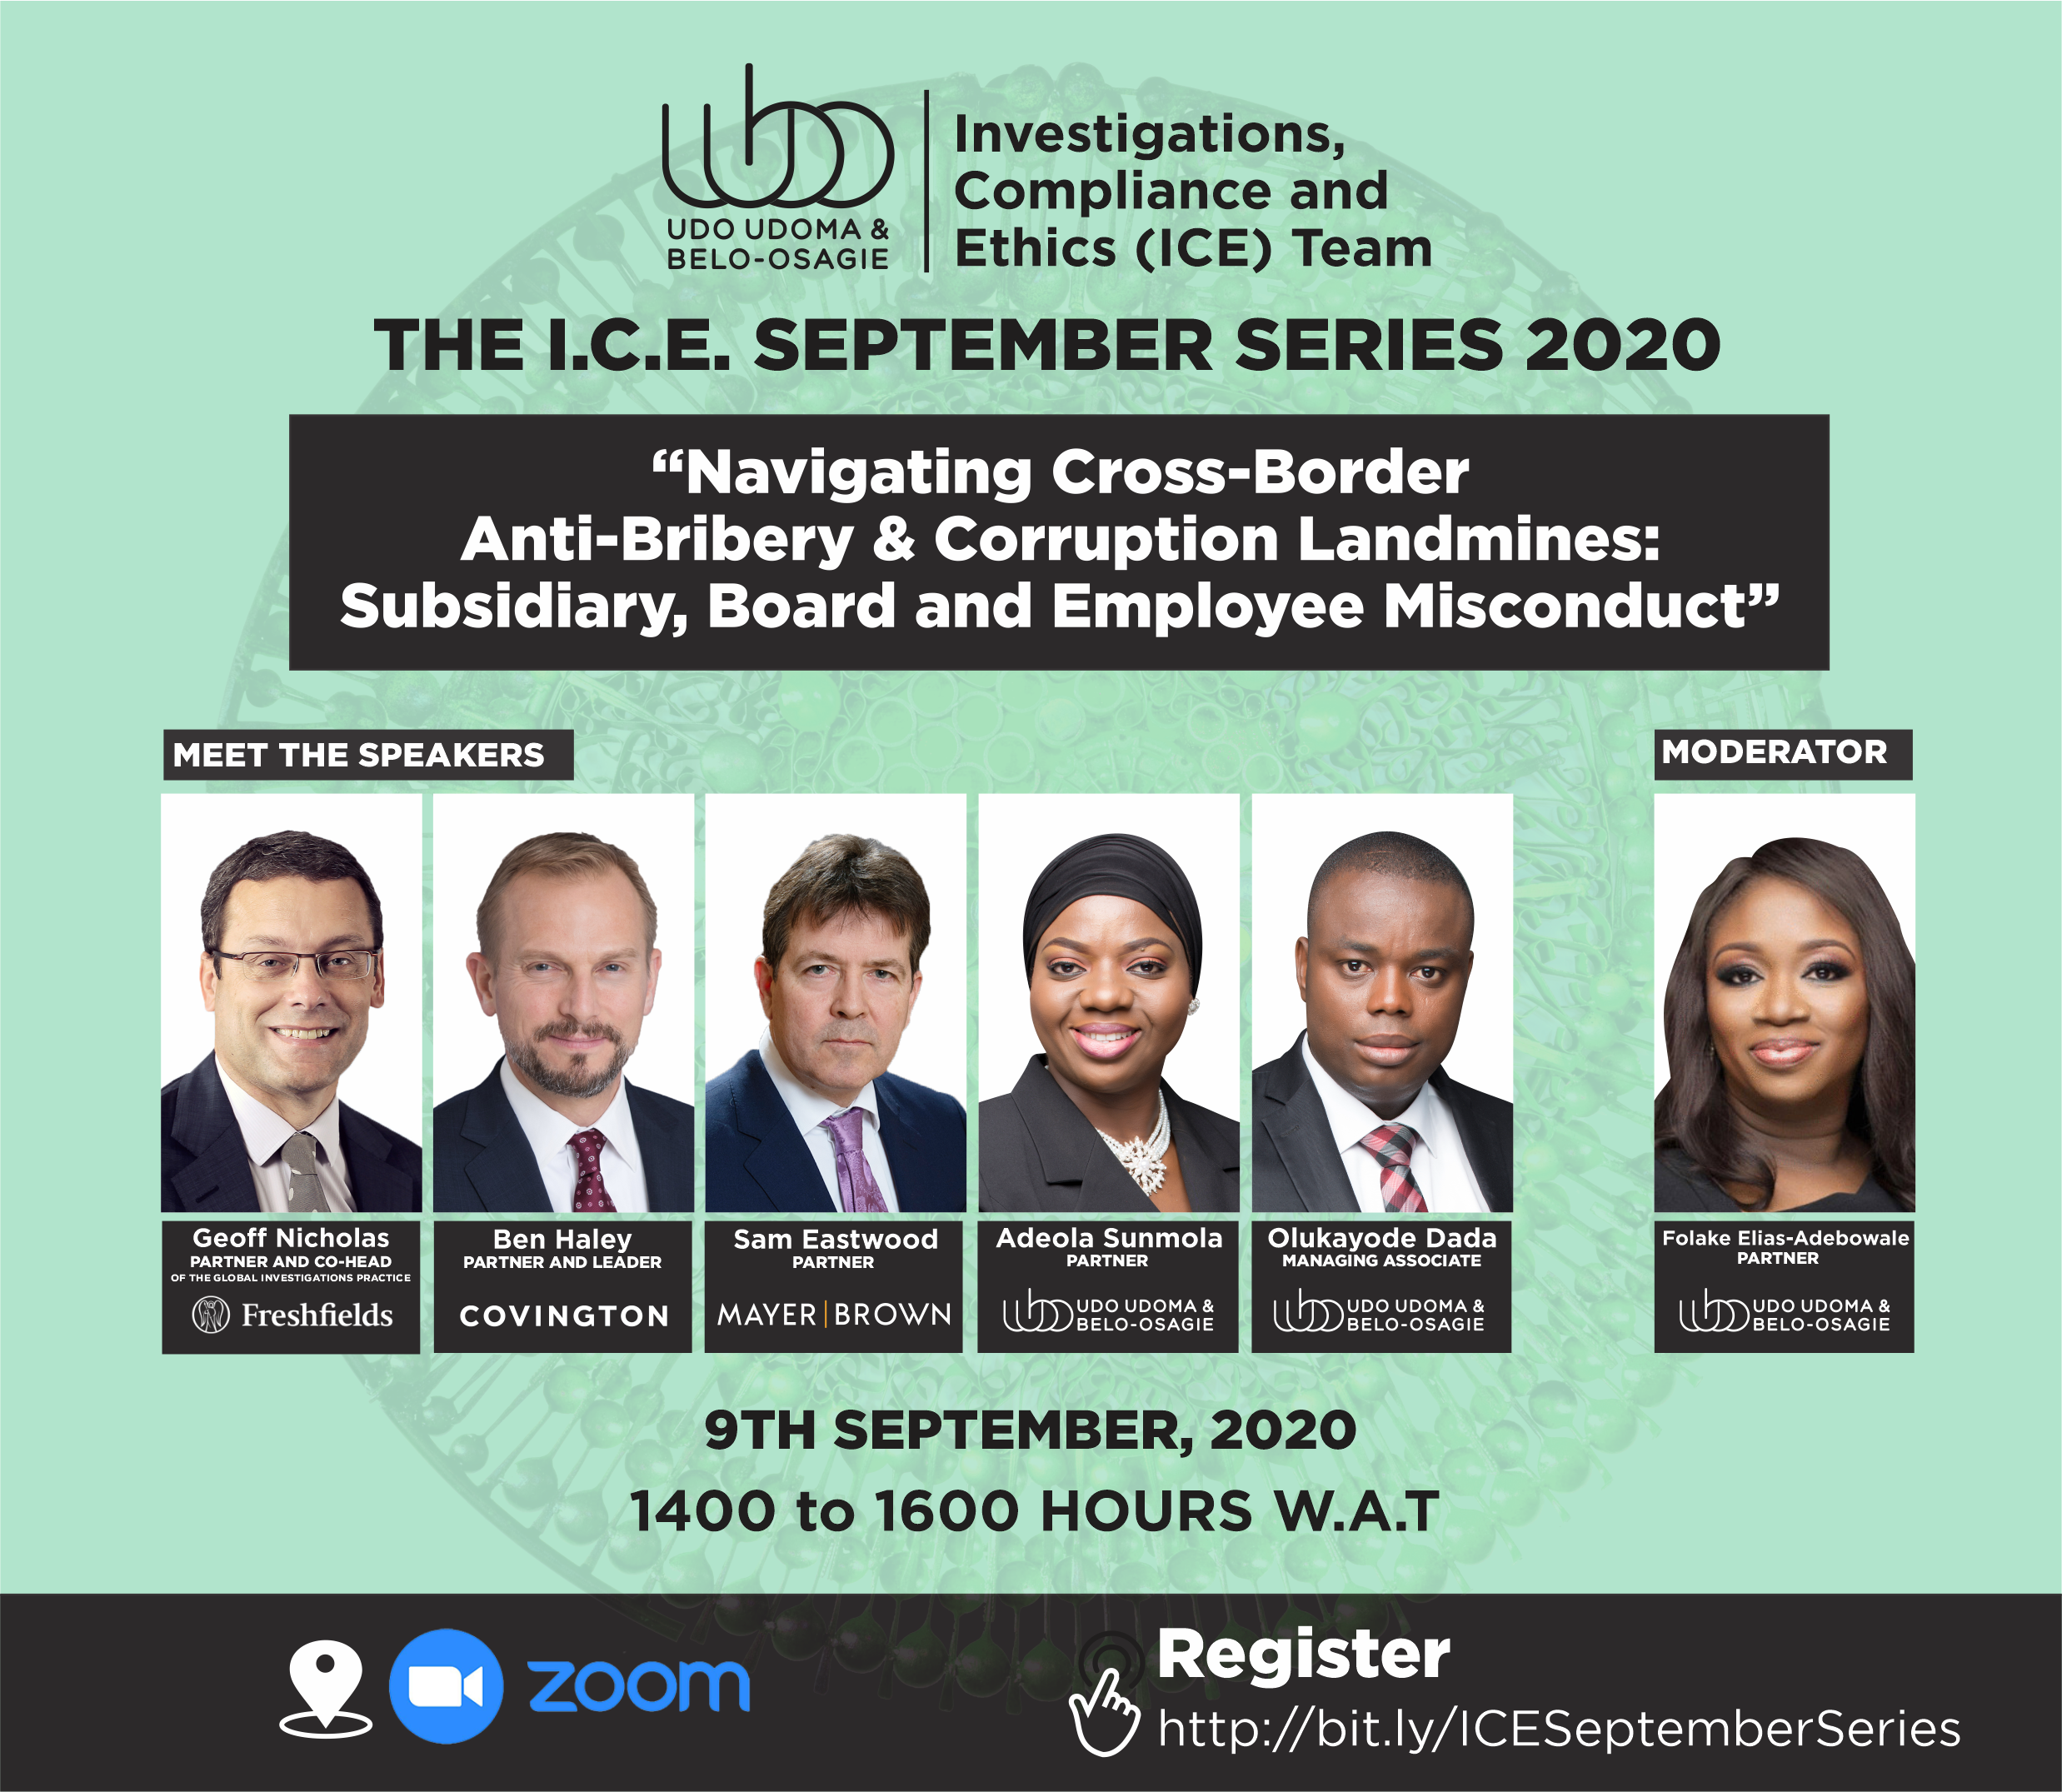 ICE SEPTEMBER SERIES - NAVIGATING CROSS-BORDER ANTI-BRIBERY AND CORRUPTION LANDMINES: SUBSIDIARY, BOARD AND EMPLOYEE MISCONDUCT